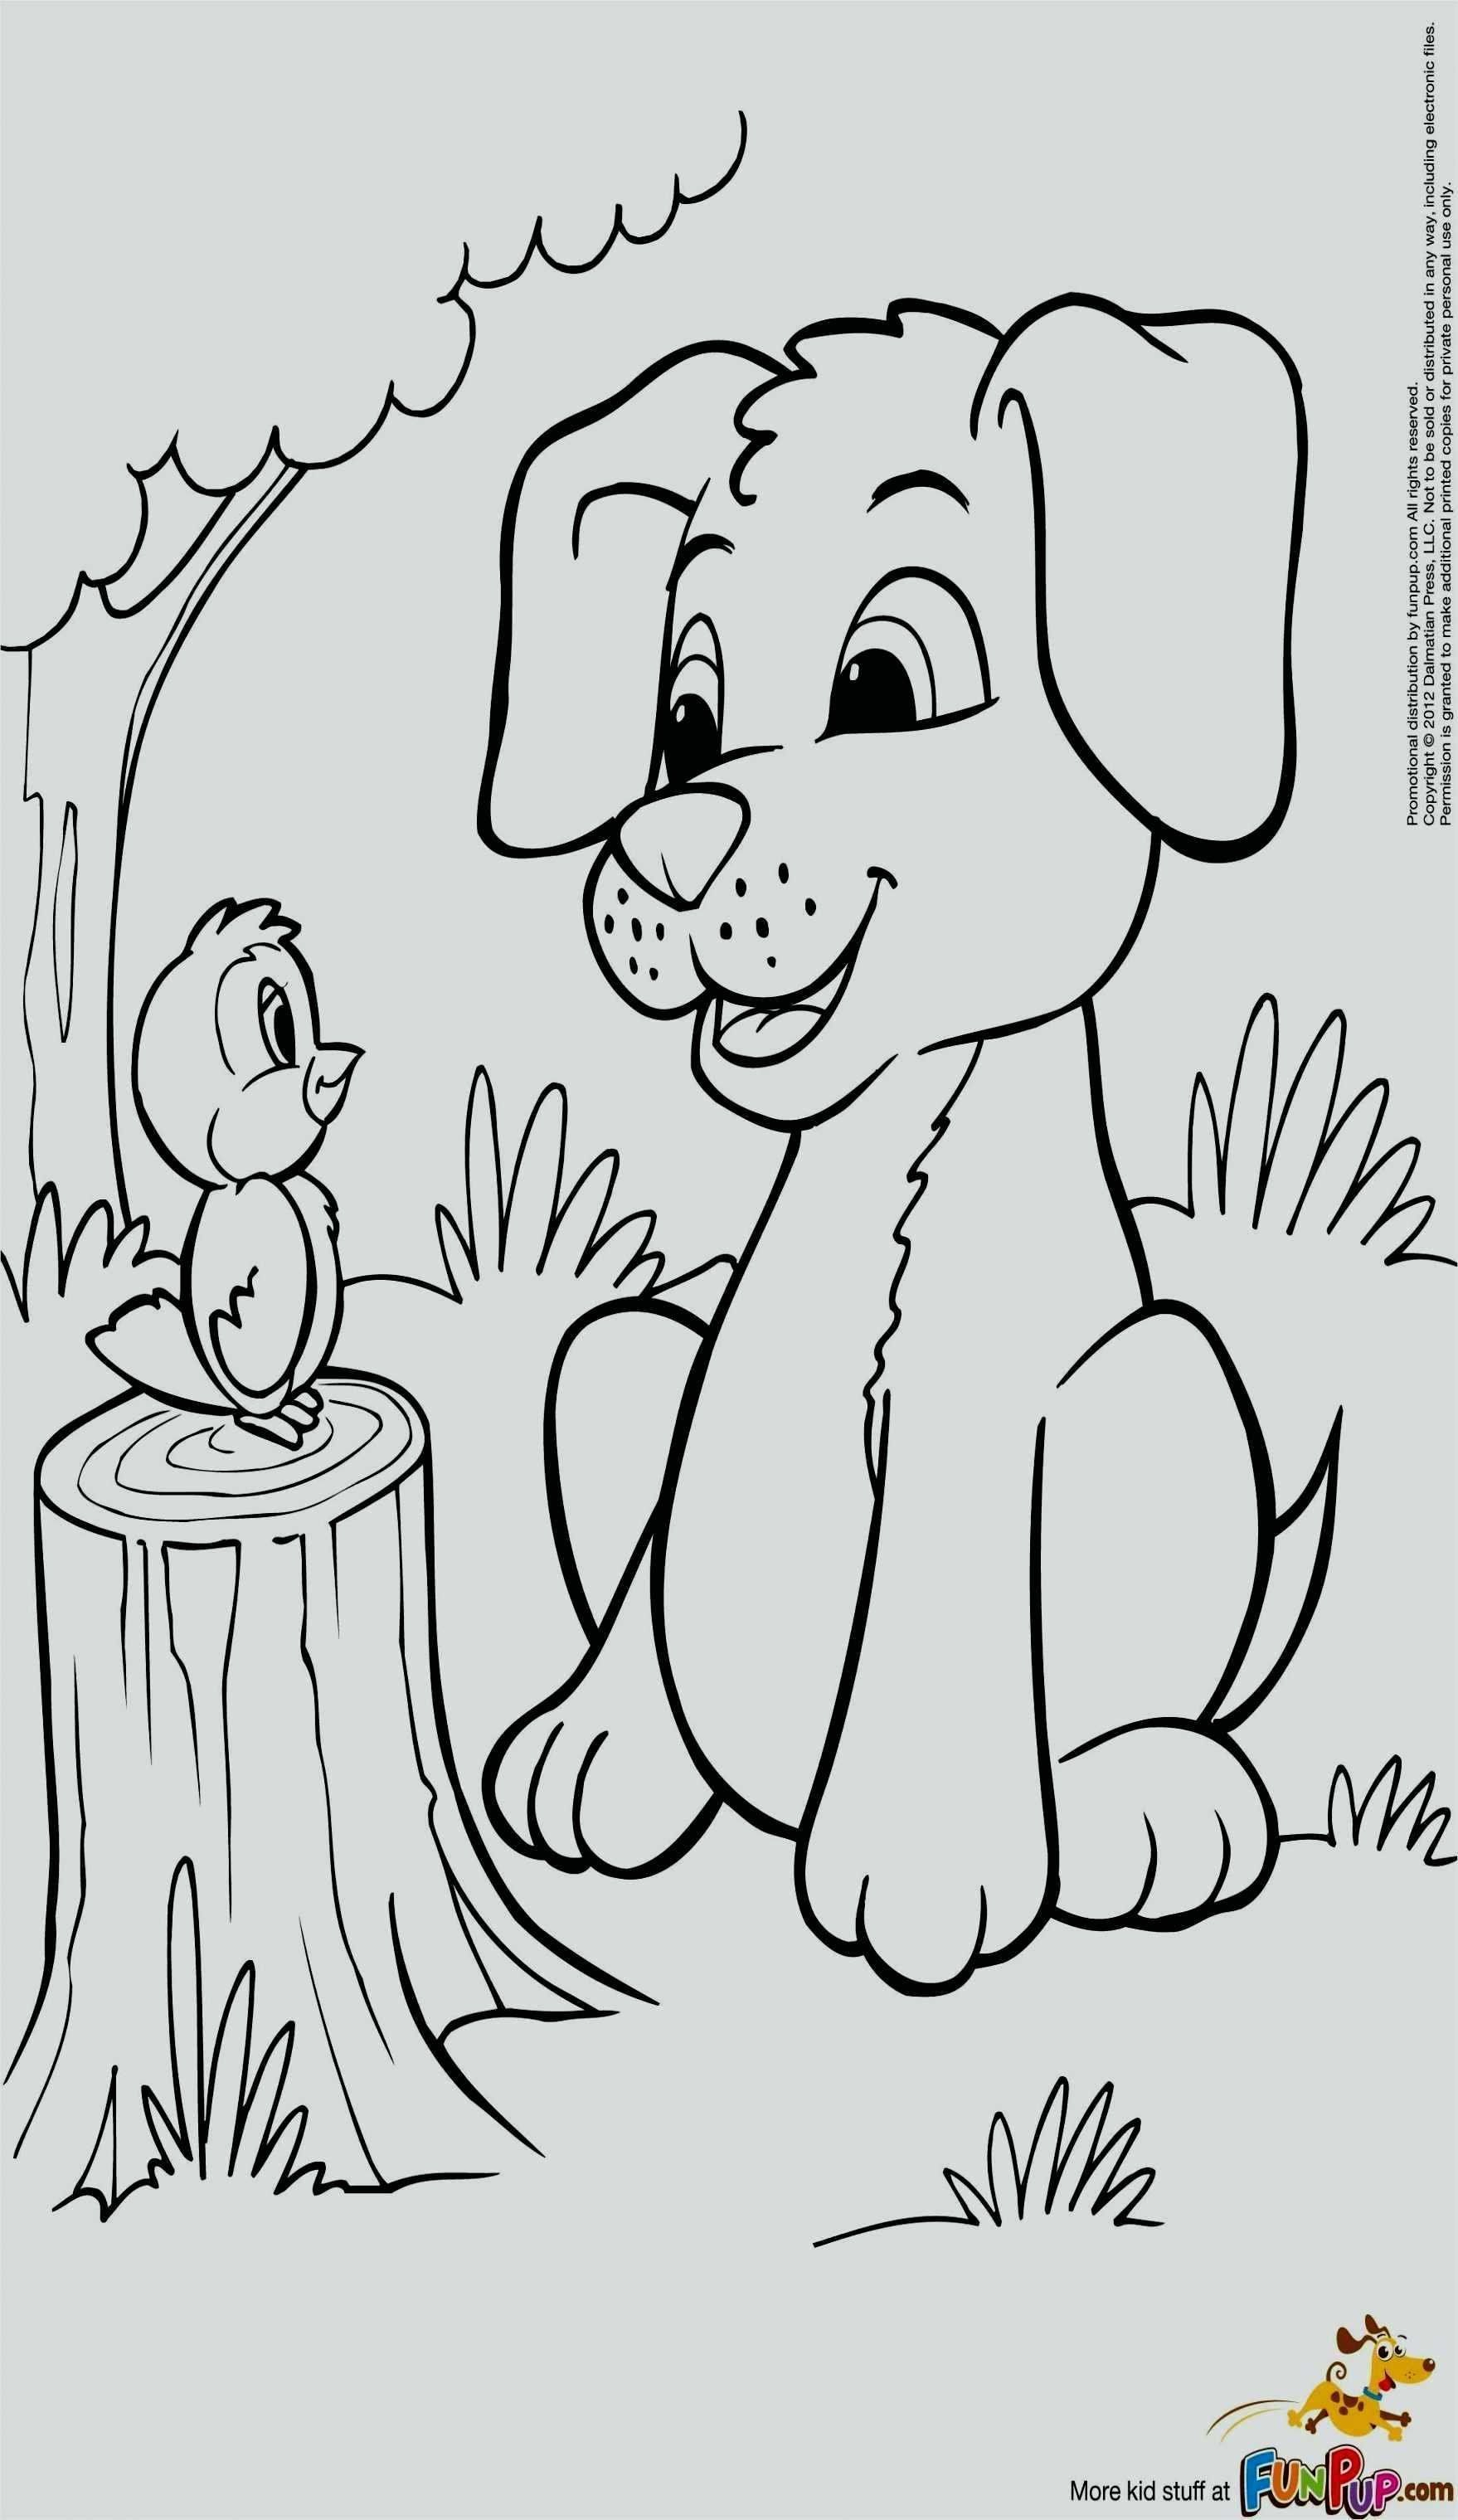 Animal Coloring Pages Kitten Awesome Free Coloring Pages Kittens And Puppies Cortexcolor In 2020 Bird Coloring Pages Puppy Coloring Pages Animal Coloring Pages